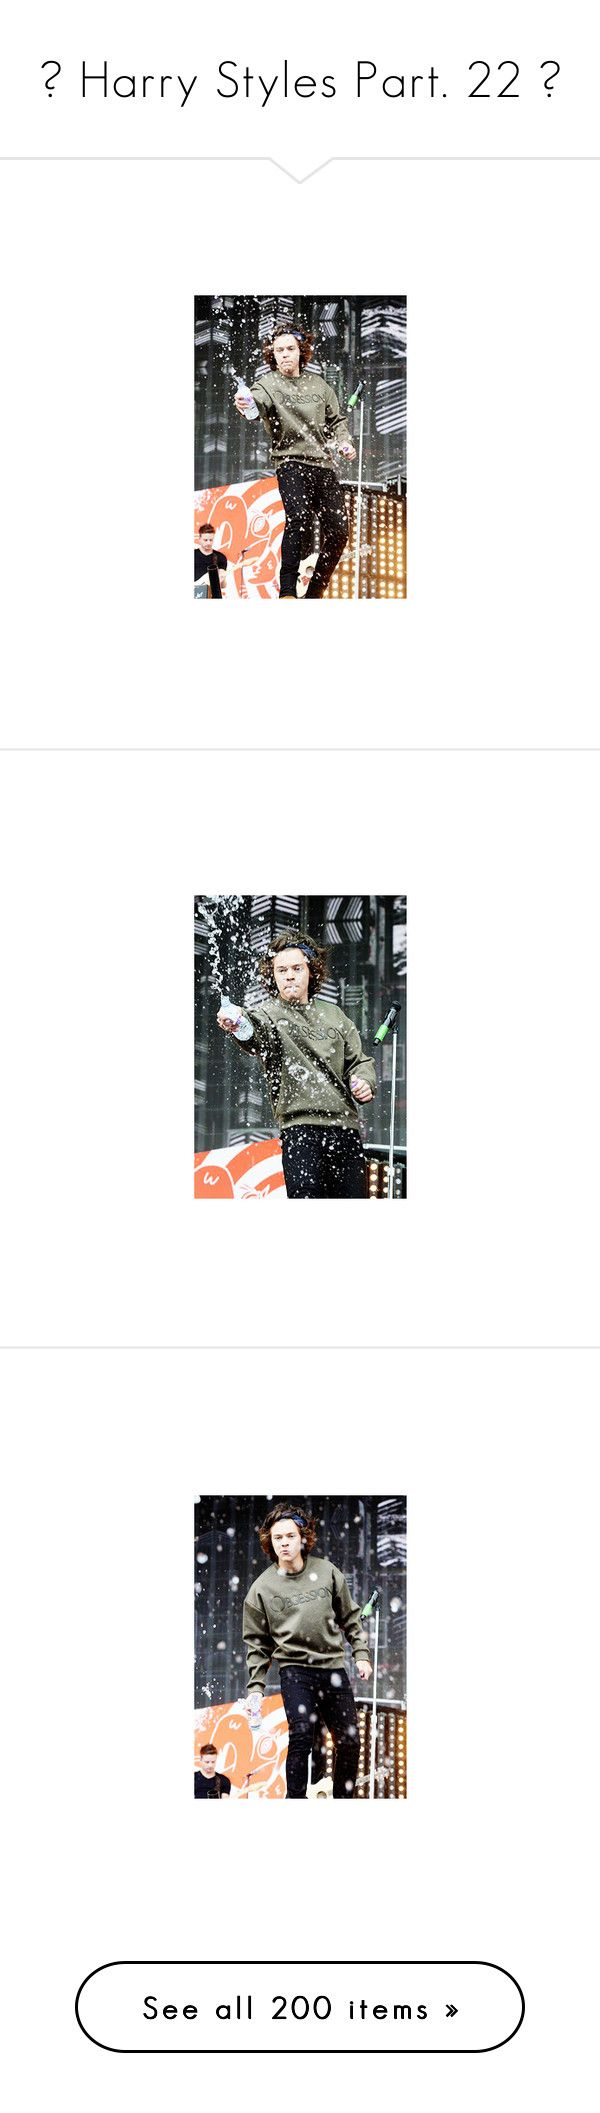 """""""✝ Harry Styles Part. 22 ✝"""" by thantx-phxbia ❤ liked on Polyvore featuring harry styles, 1d, harry, one direction, lou teasdale, photo, harold, pictures, h and & pictures"""